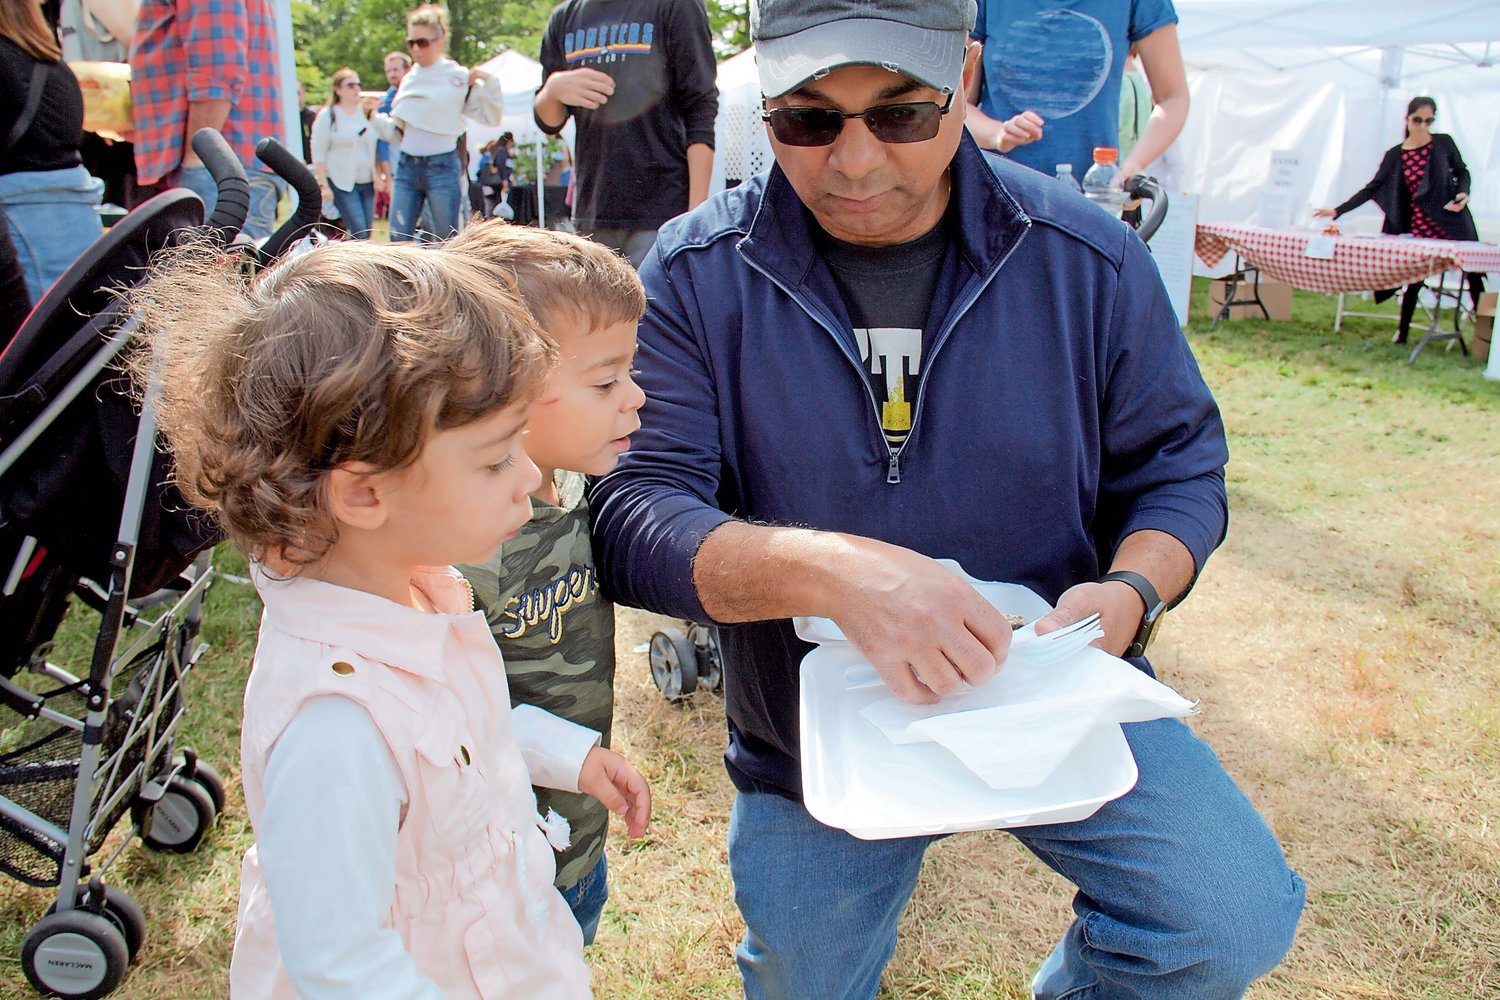 Two-year-old twins Emma and Jake DiFiglia tasted a blueberry crepe for the first time that their father Sam bought at the festival.